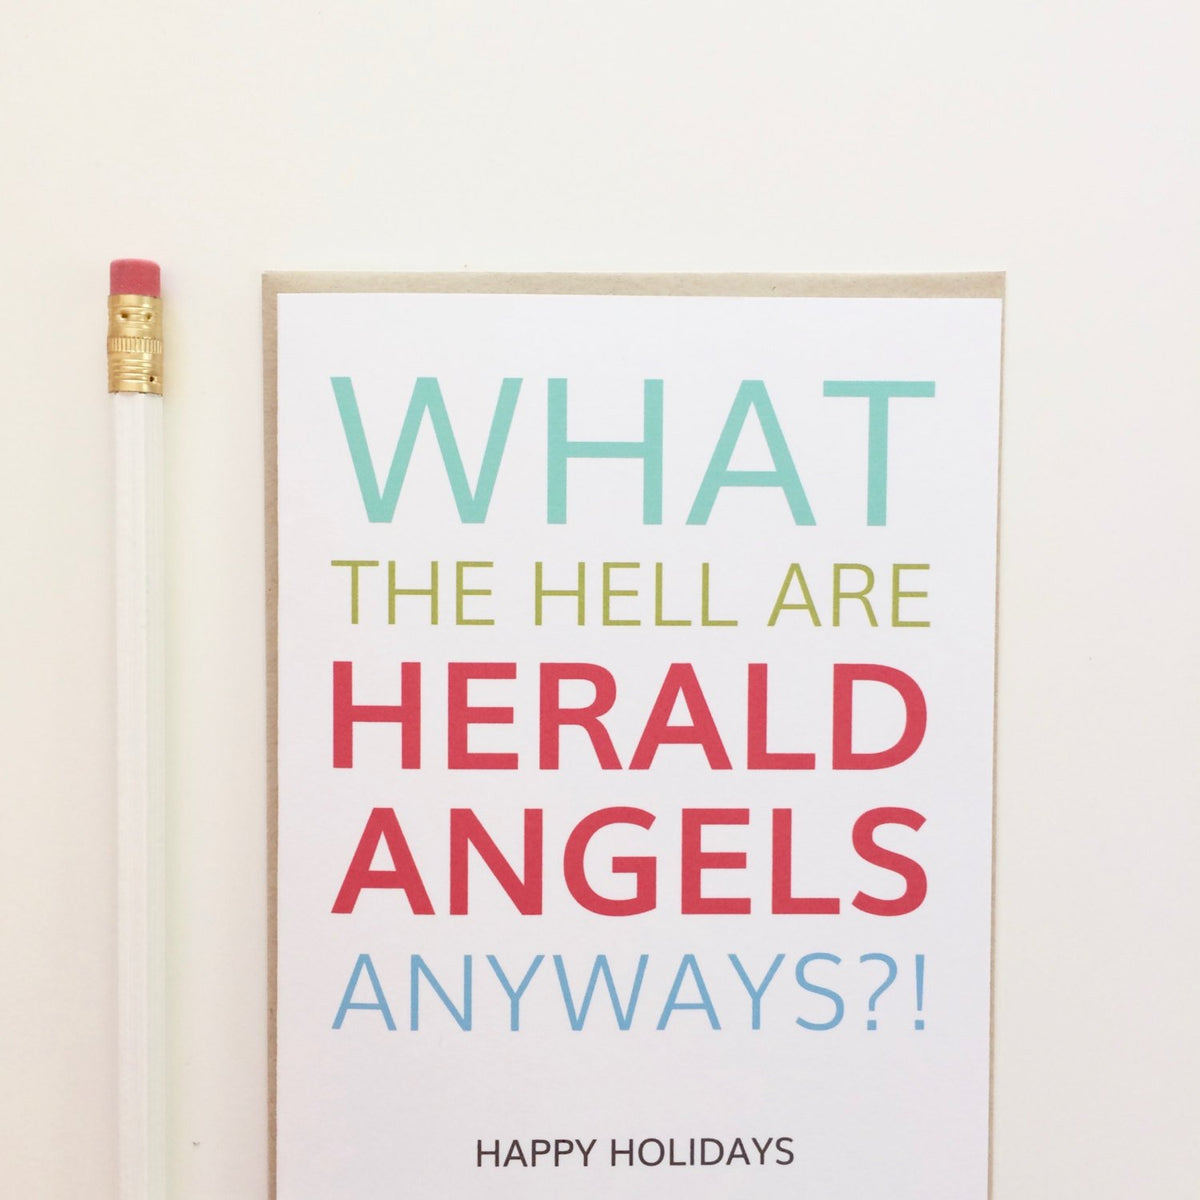 Herald Angels Holiday Card